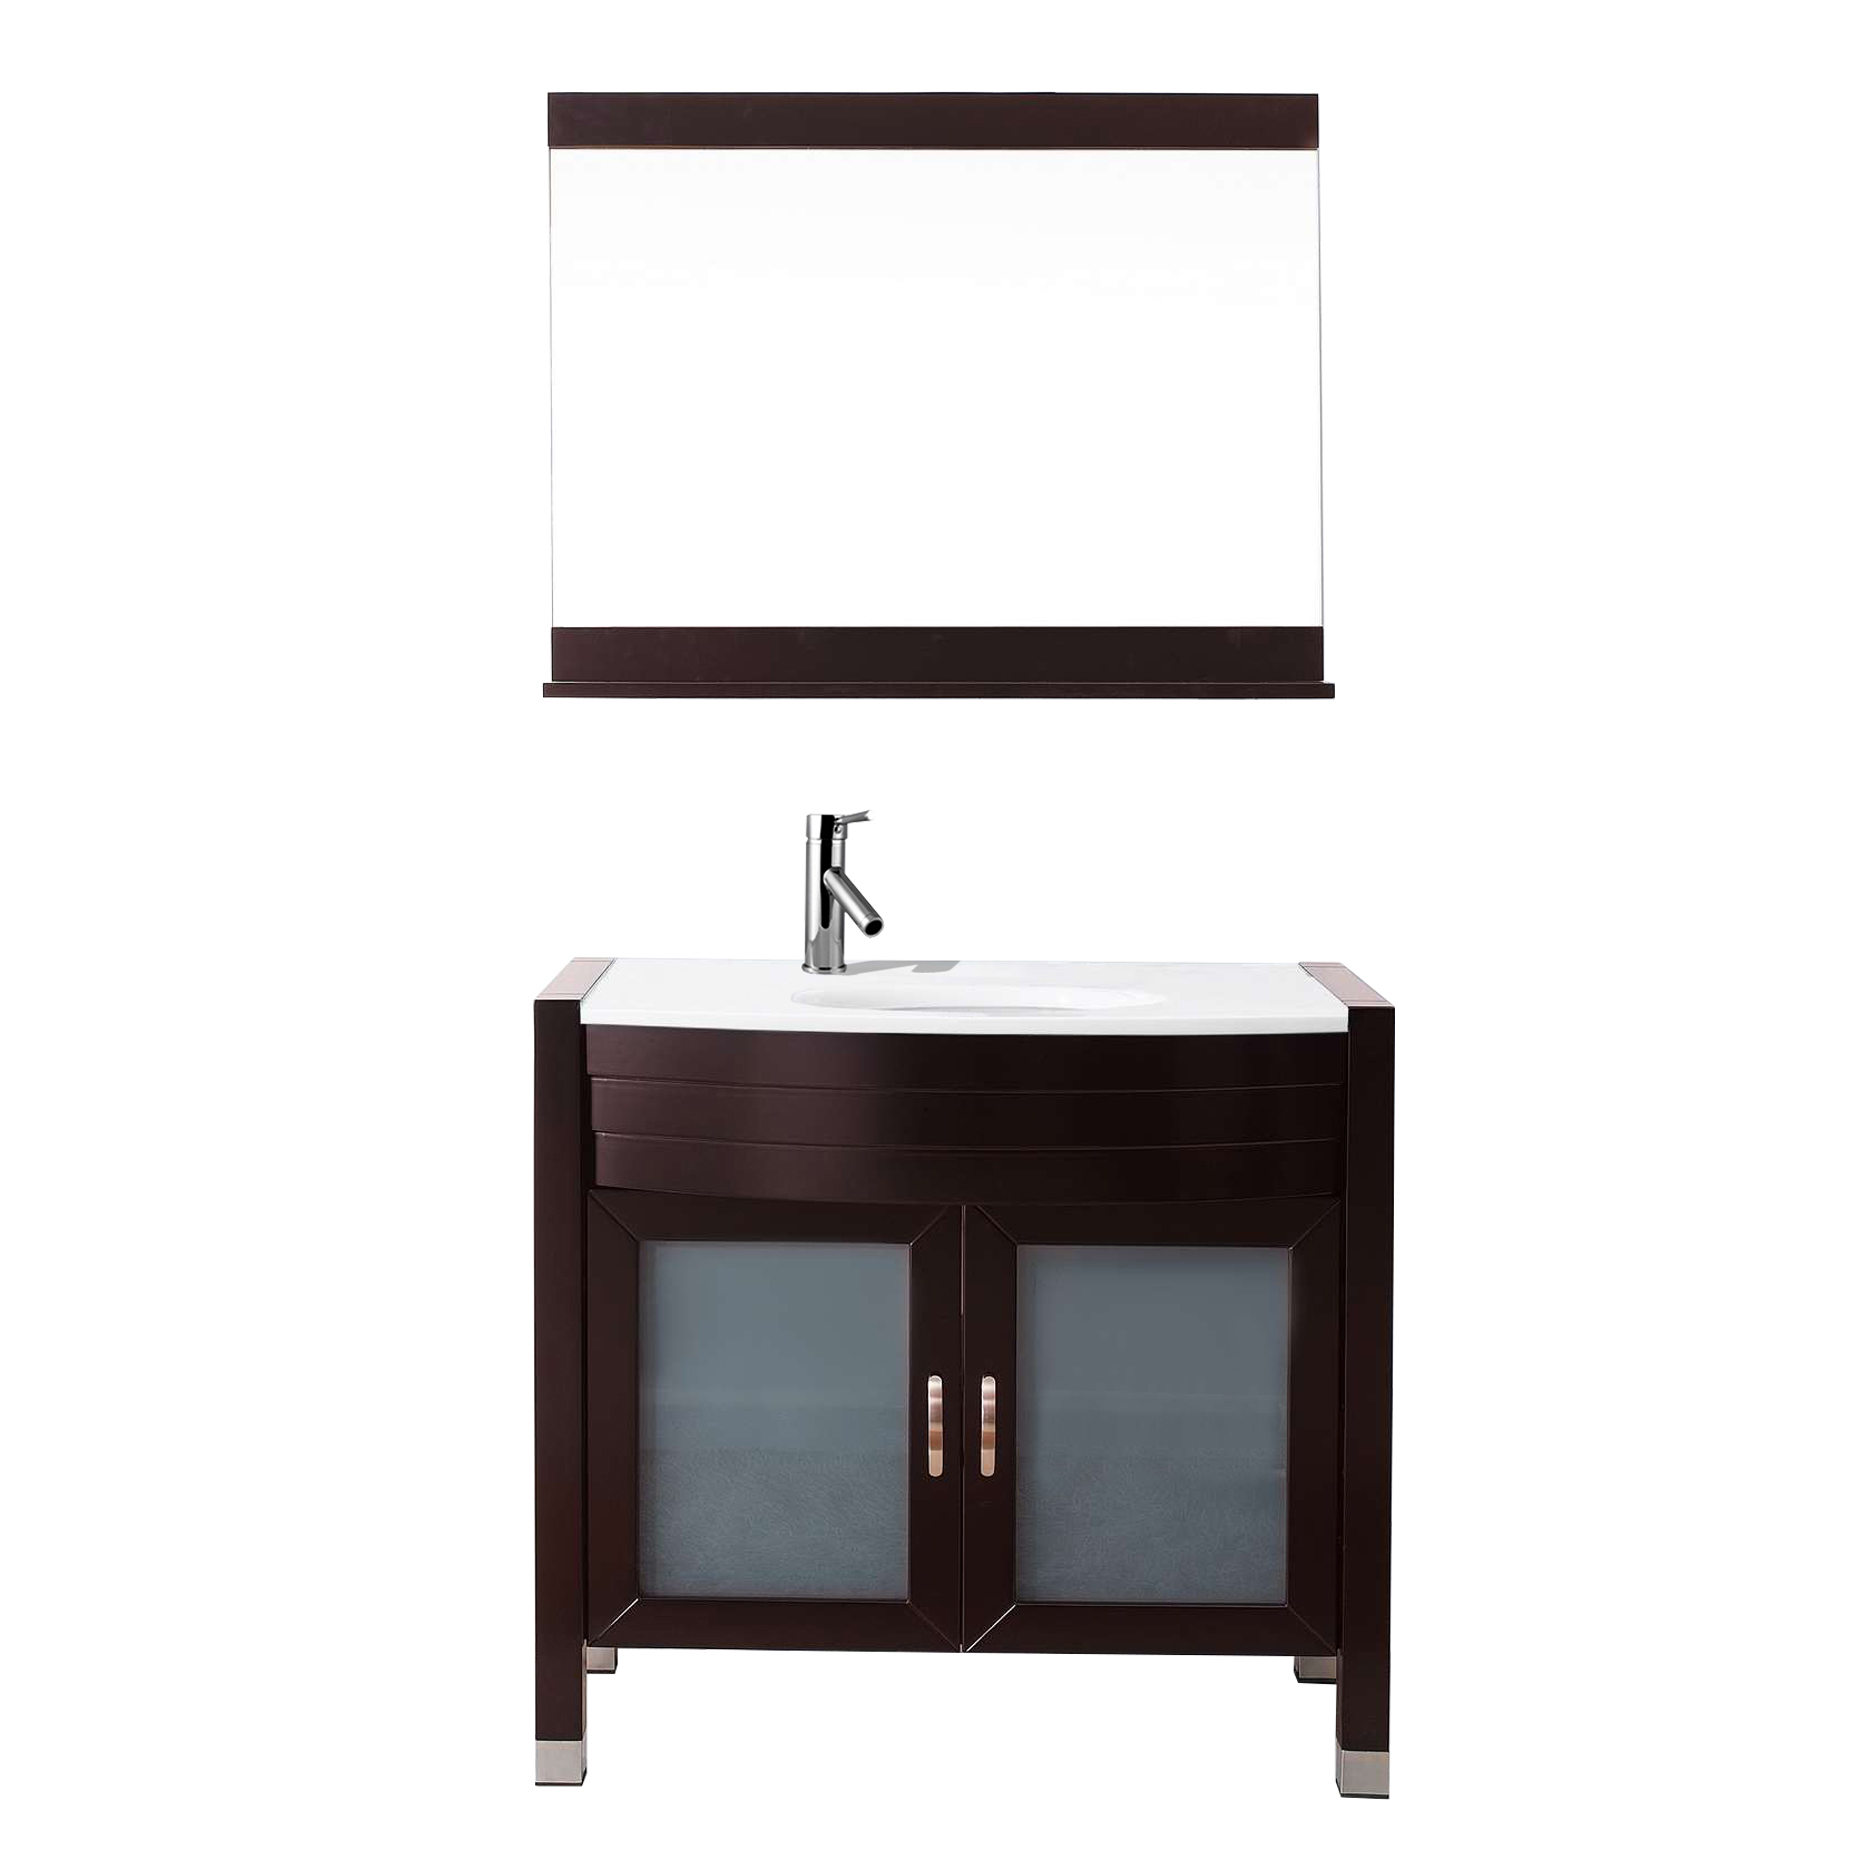 "Virtu USA - UM-3071-S-ES - Ava 36"" Single Round Sink White Stone Top Vanity in Espresso with Polished Chrome Faucet and Mirror by Virtu USA"